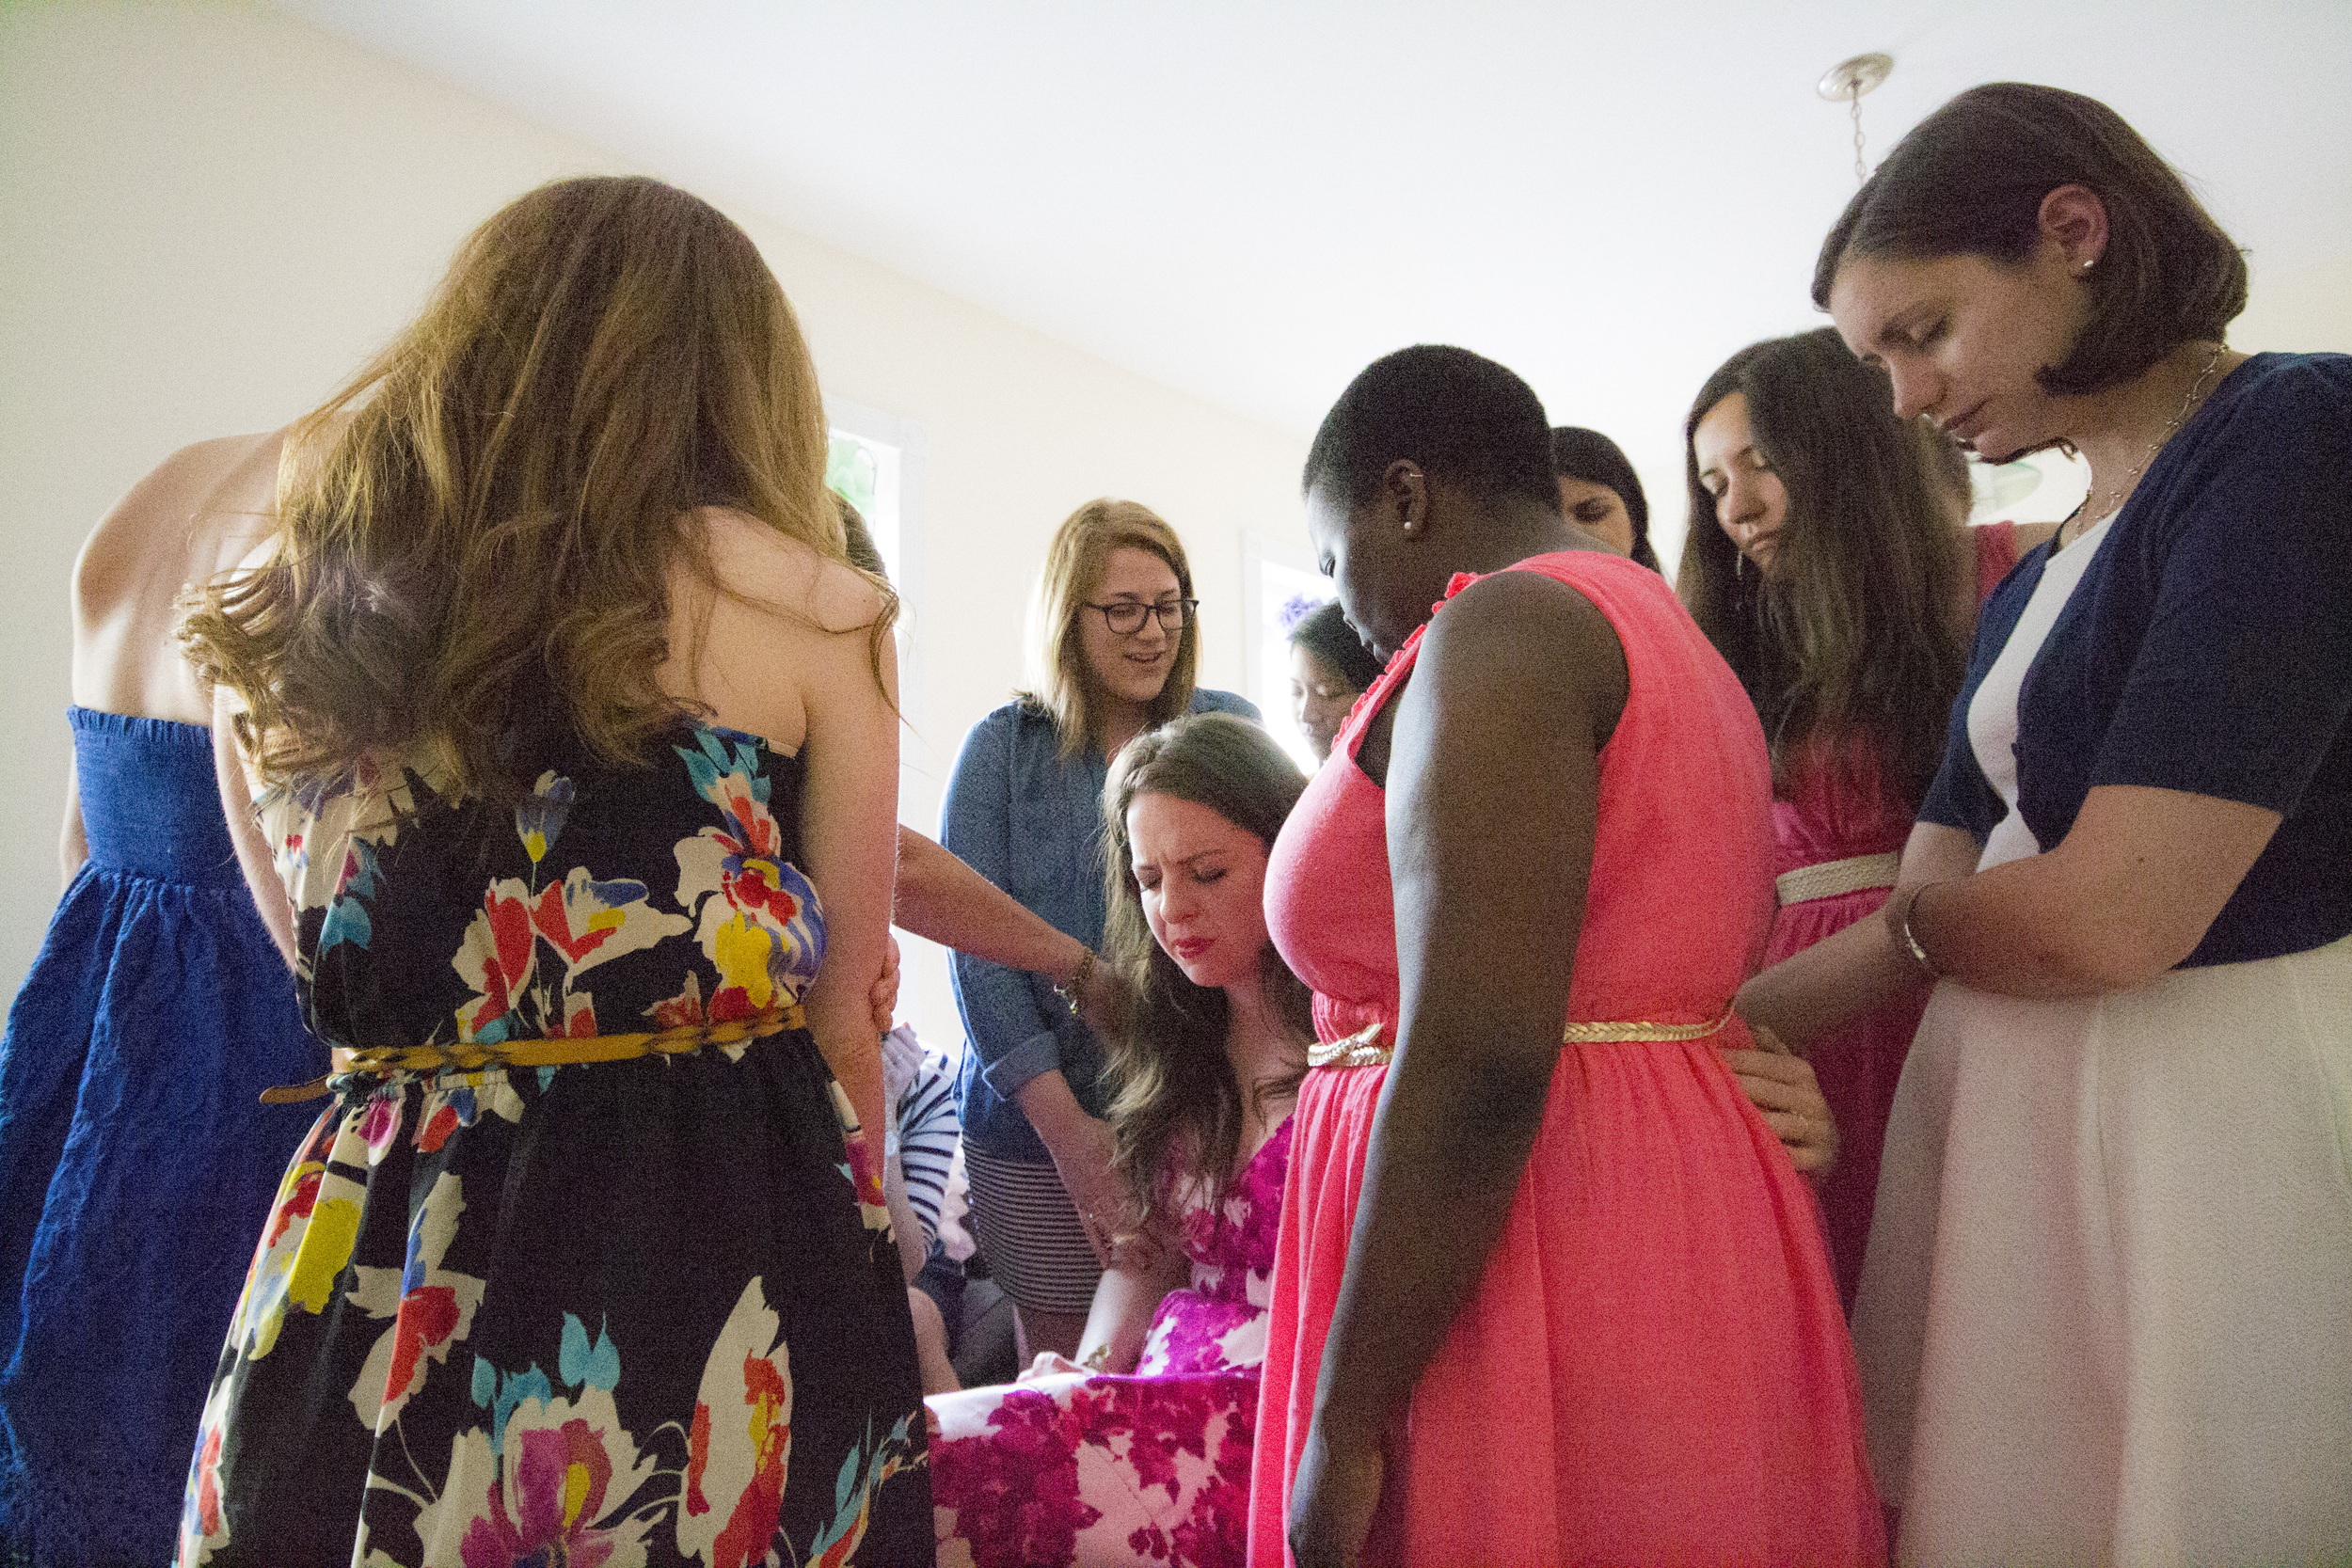 20150523_0034_ALiew_Kristin Bridal Shower.JPG